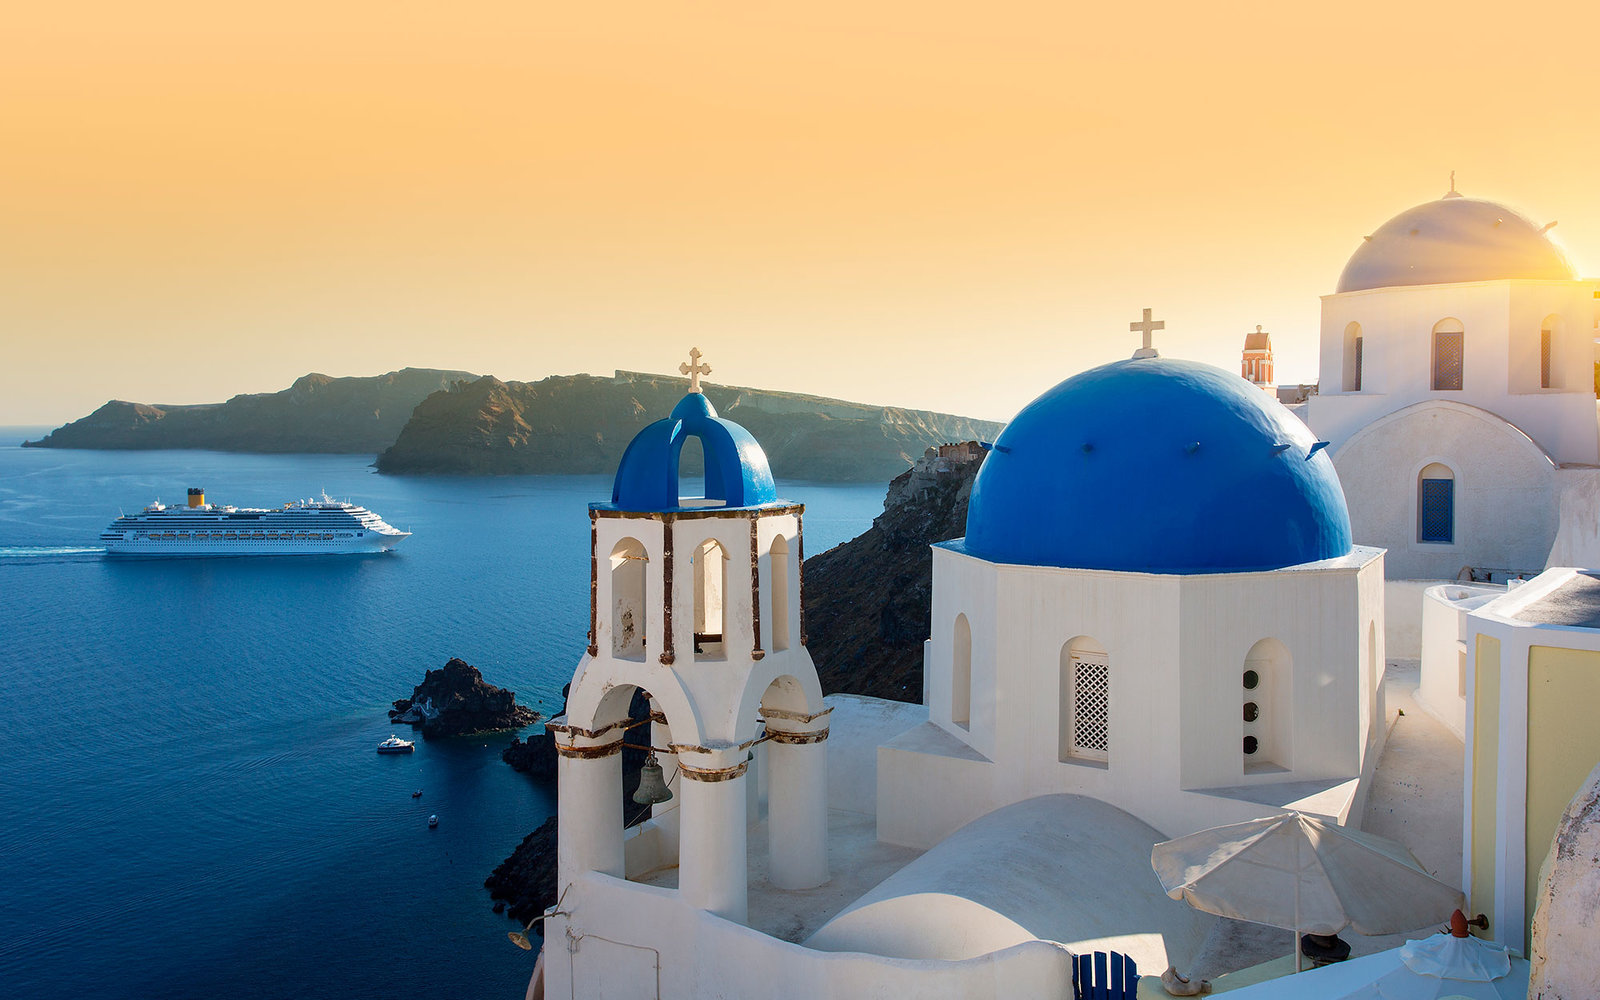 Bing Fall Desktop Wallpaper Santorini To Cap Number Of Cruise Tourists Travel Leisure